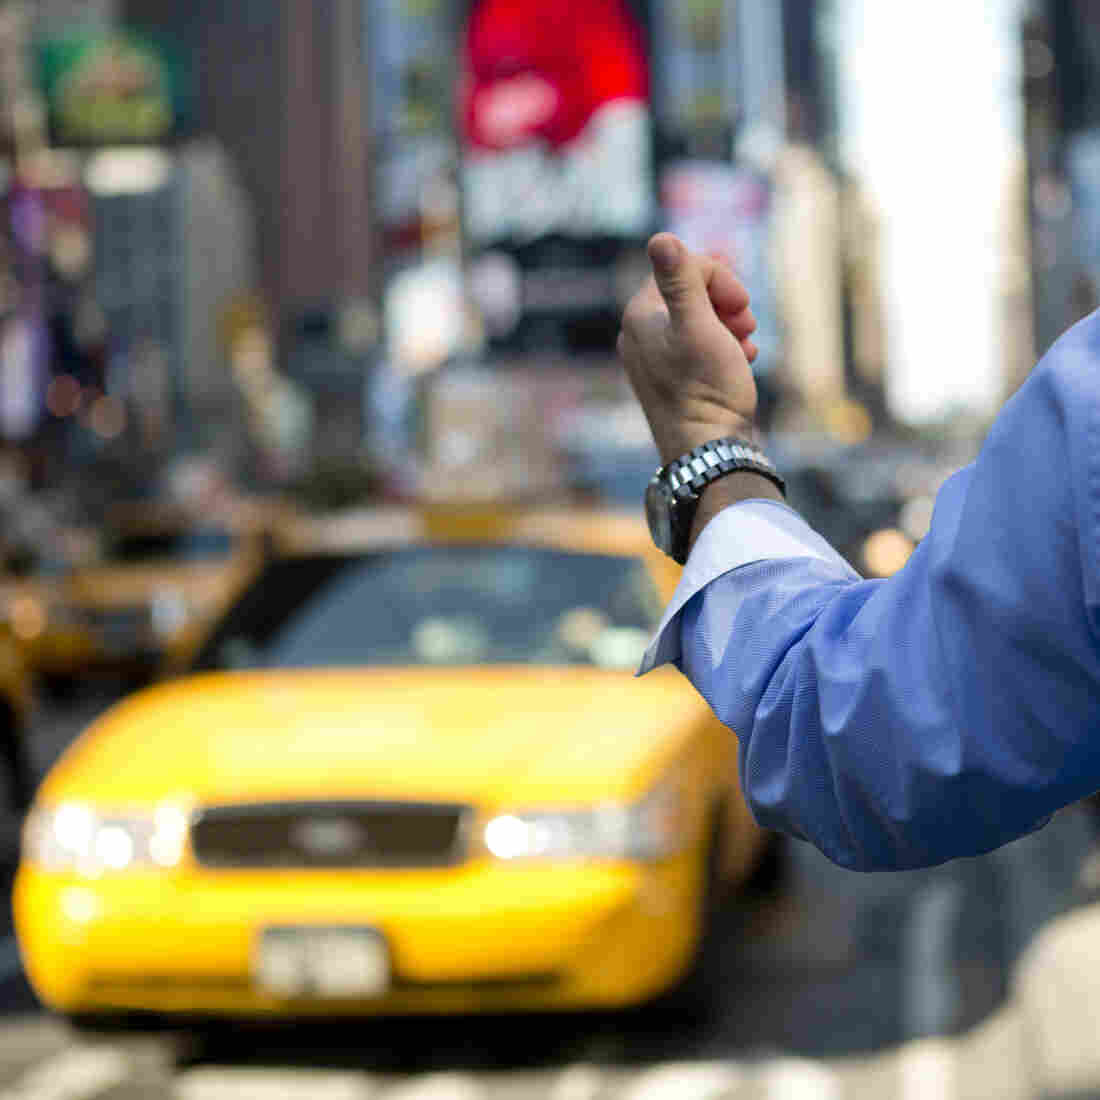 A man hails a cab in Times Square.